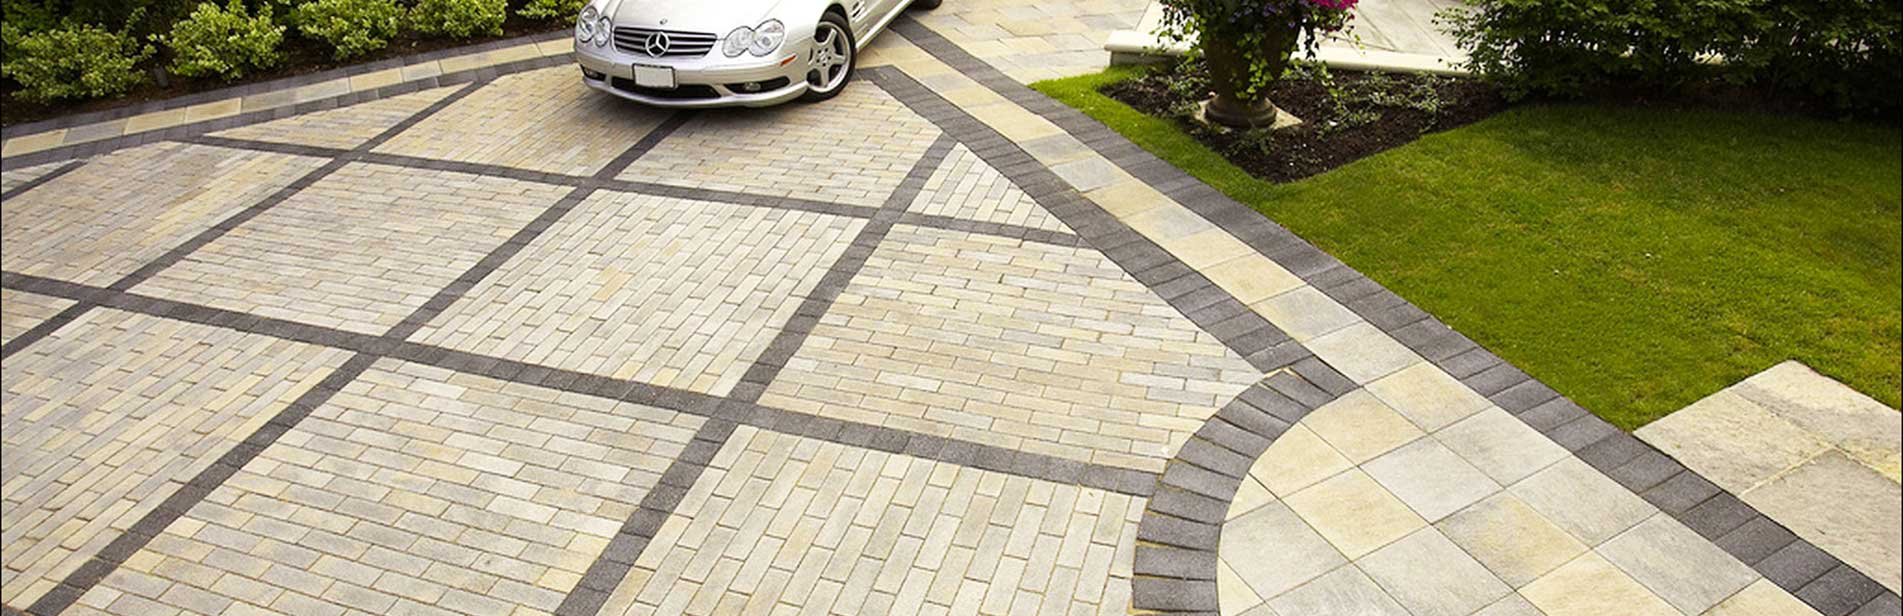 DRIVEWAYS, PARKING, PATIOS, POOL SURROUNDS, COURTYARDS, WALKWAYS & MORE